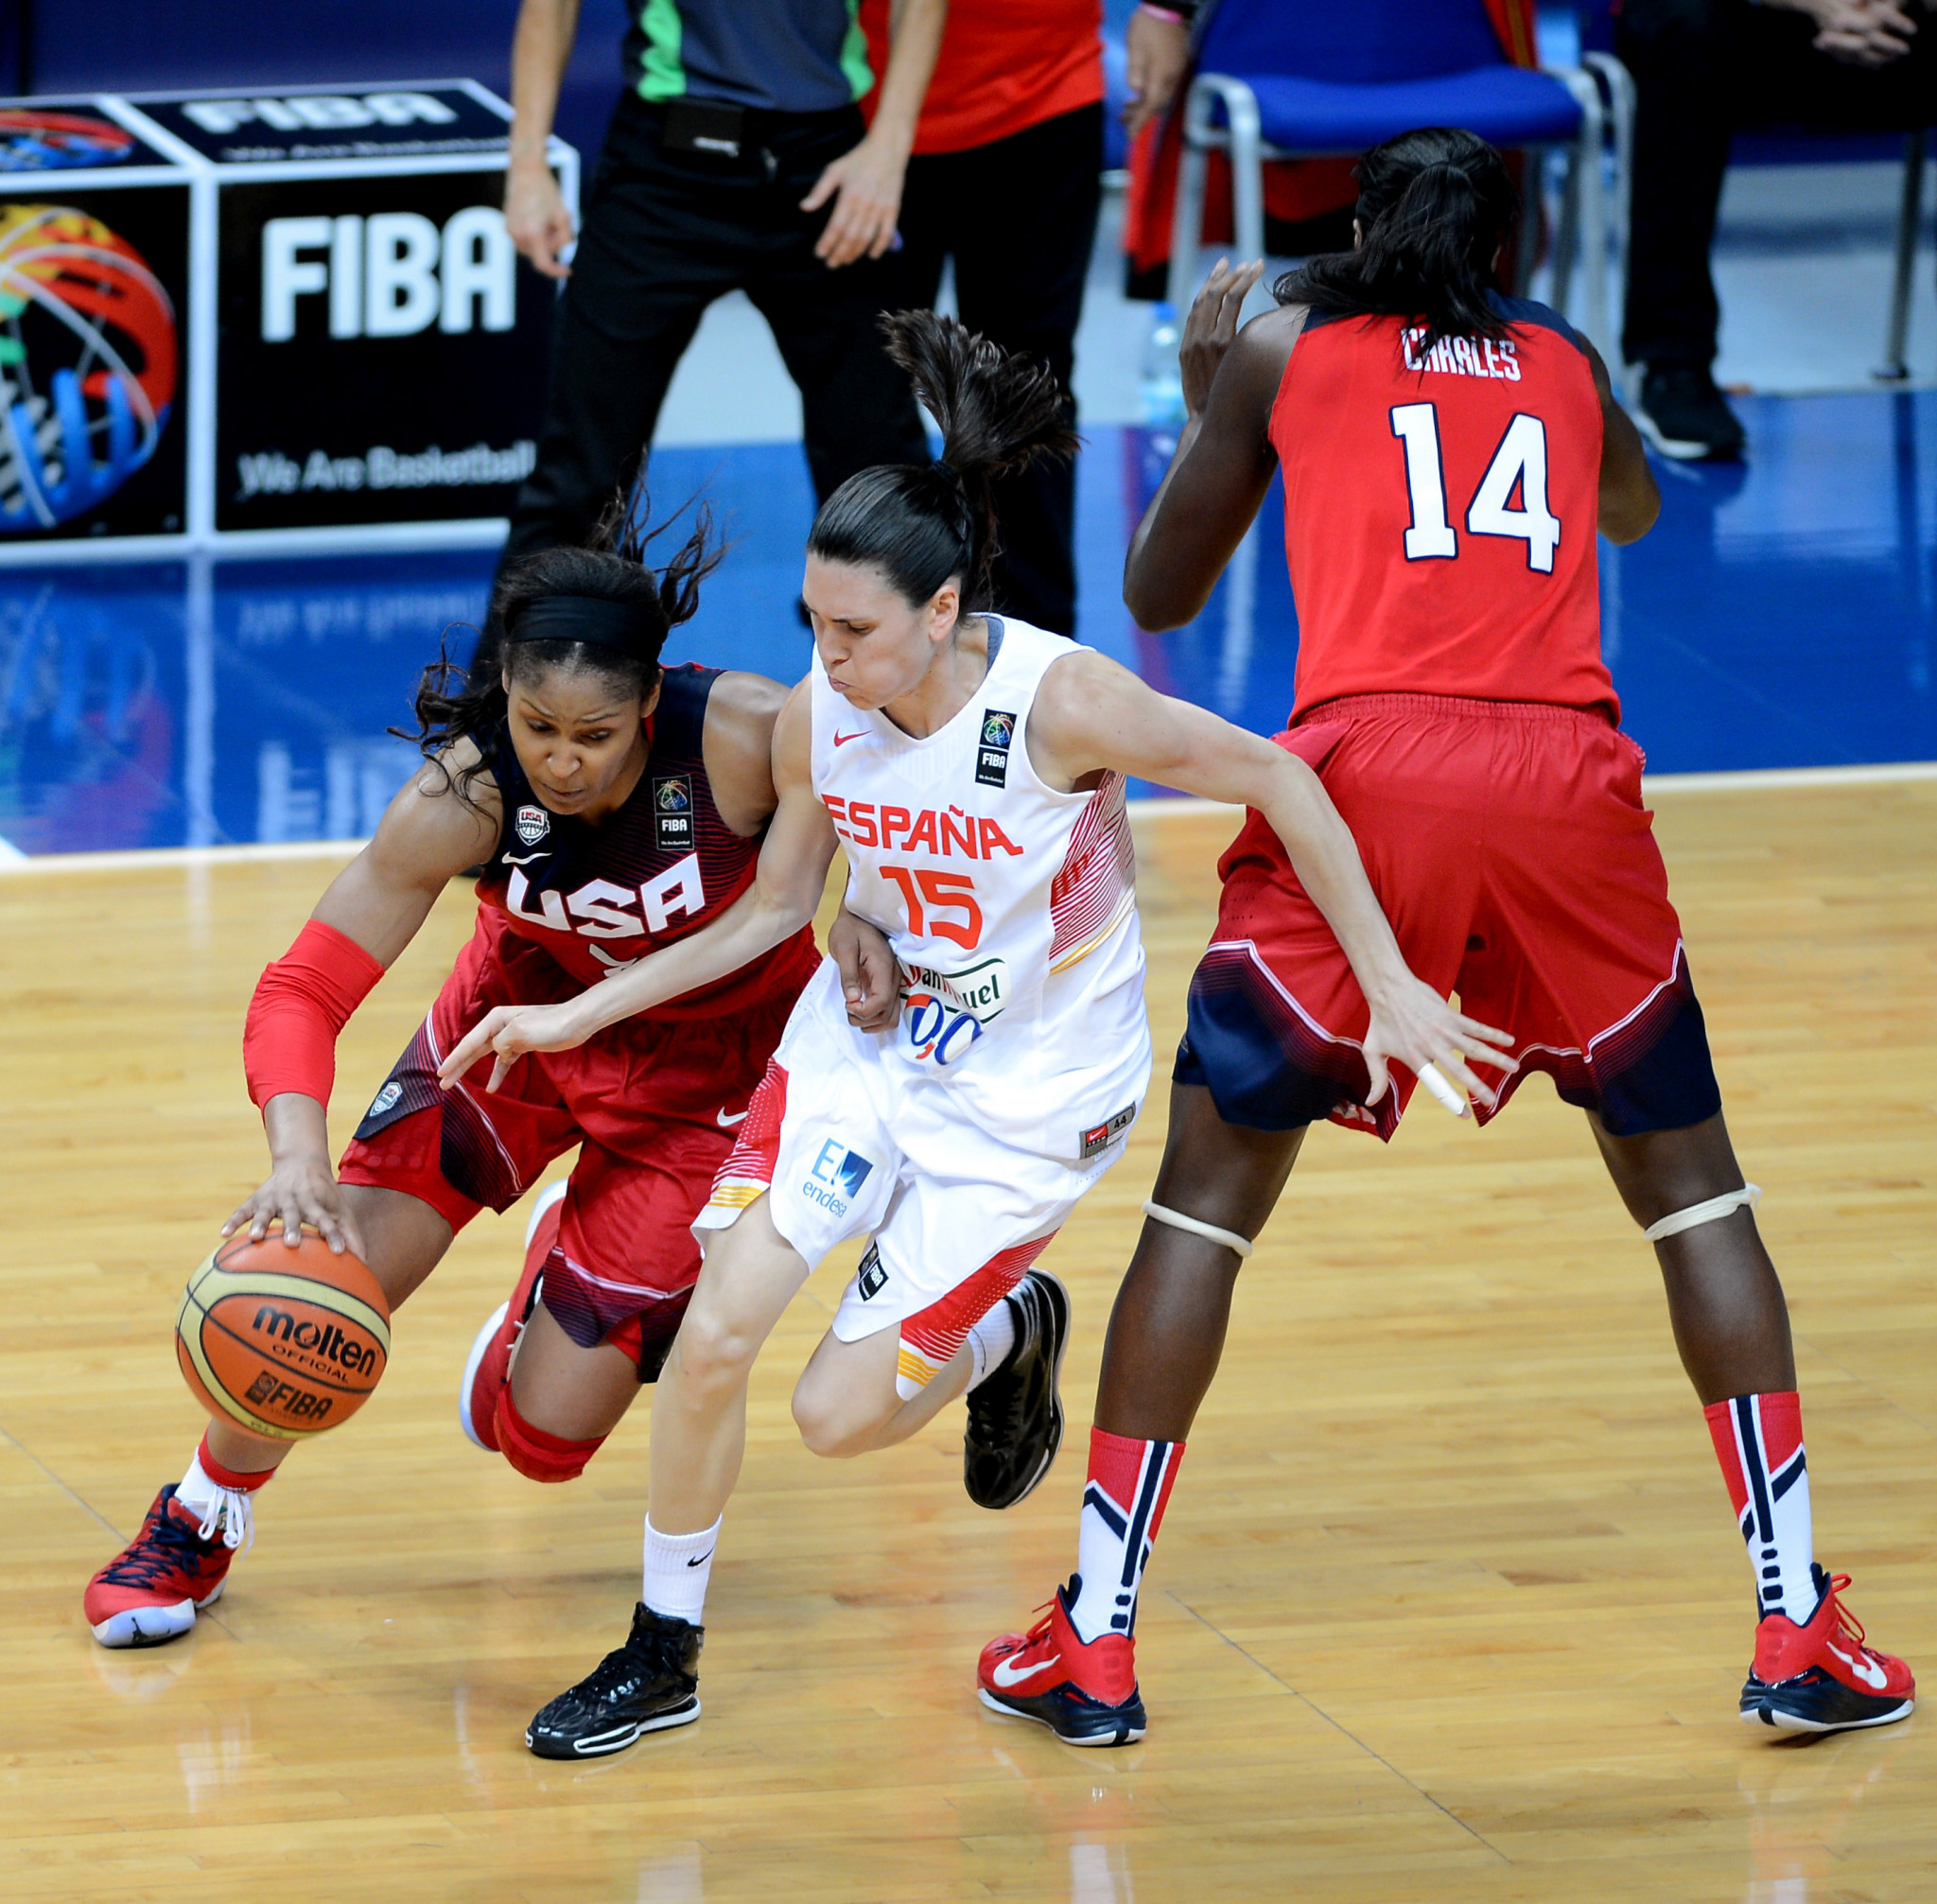 The finalised version of the FIBA women's national team competitions system, which will come into effect in November 2019, has been approved ©Getty Images